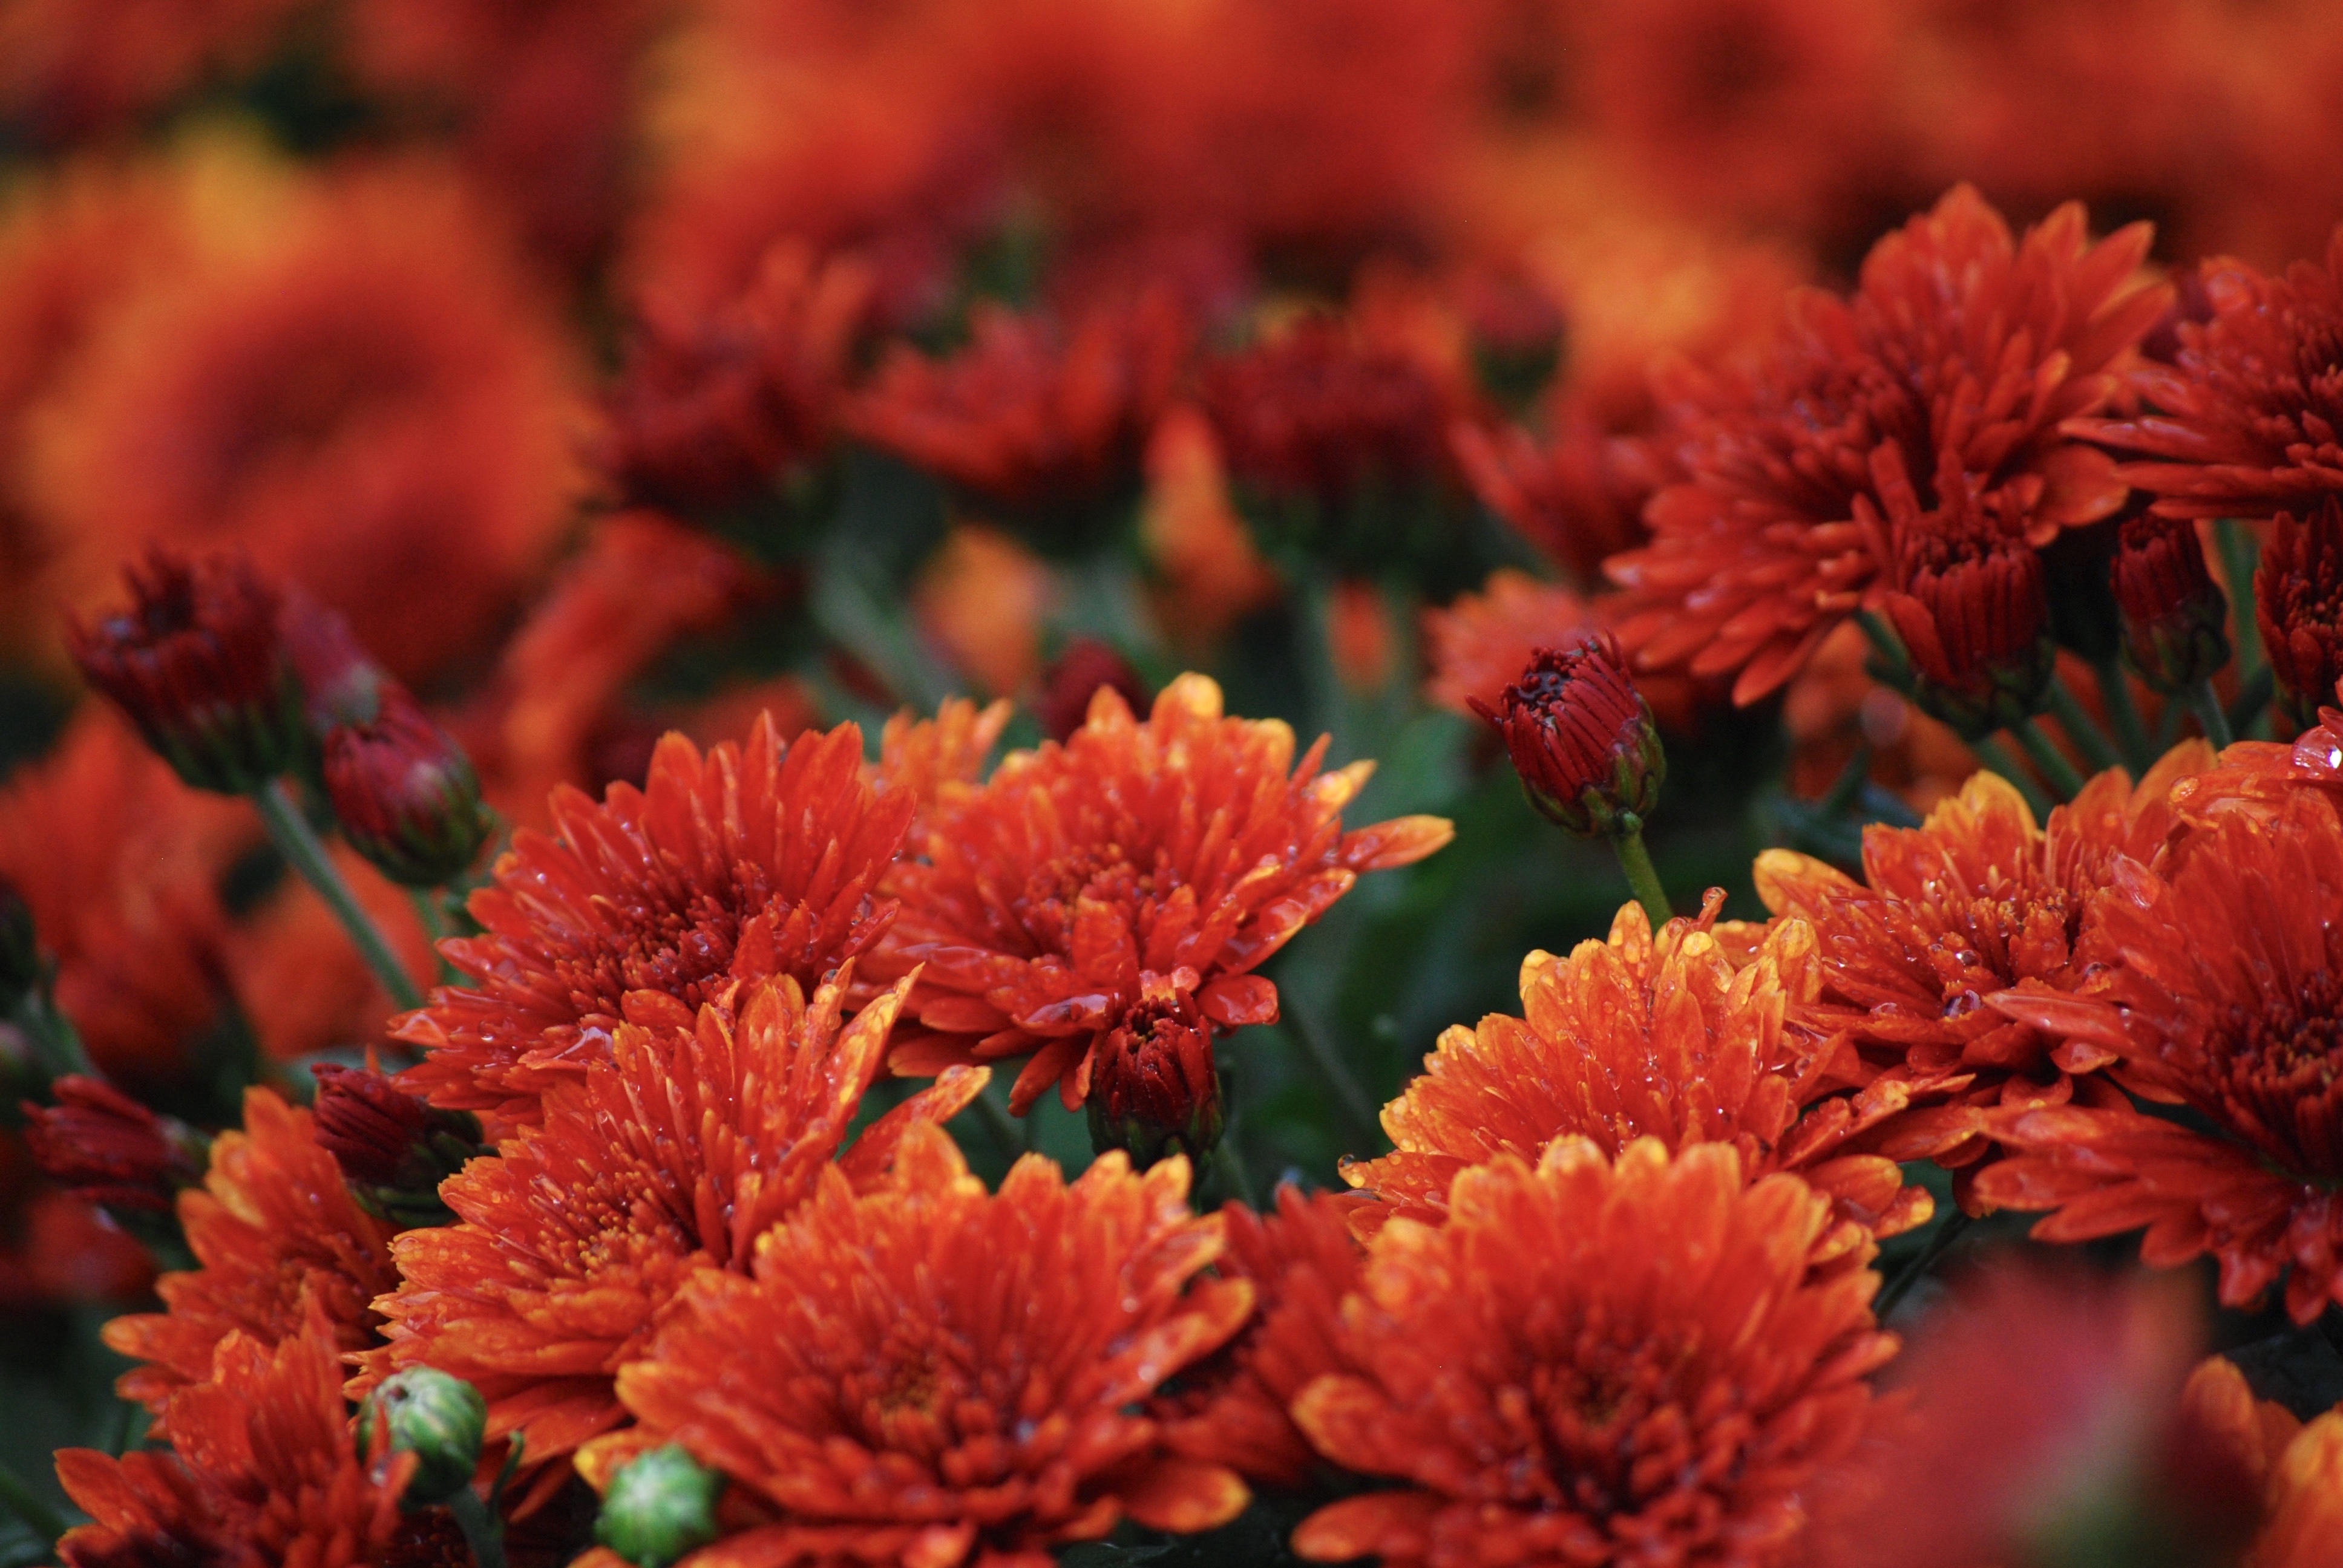 How To Overwinter Fall Mums Indoors Home Guides Sf Gate